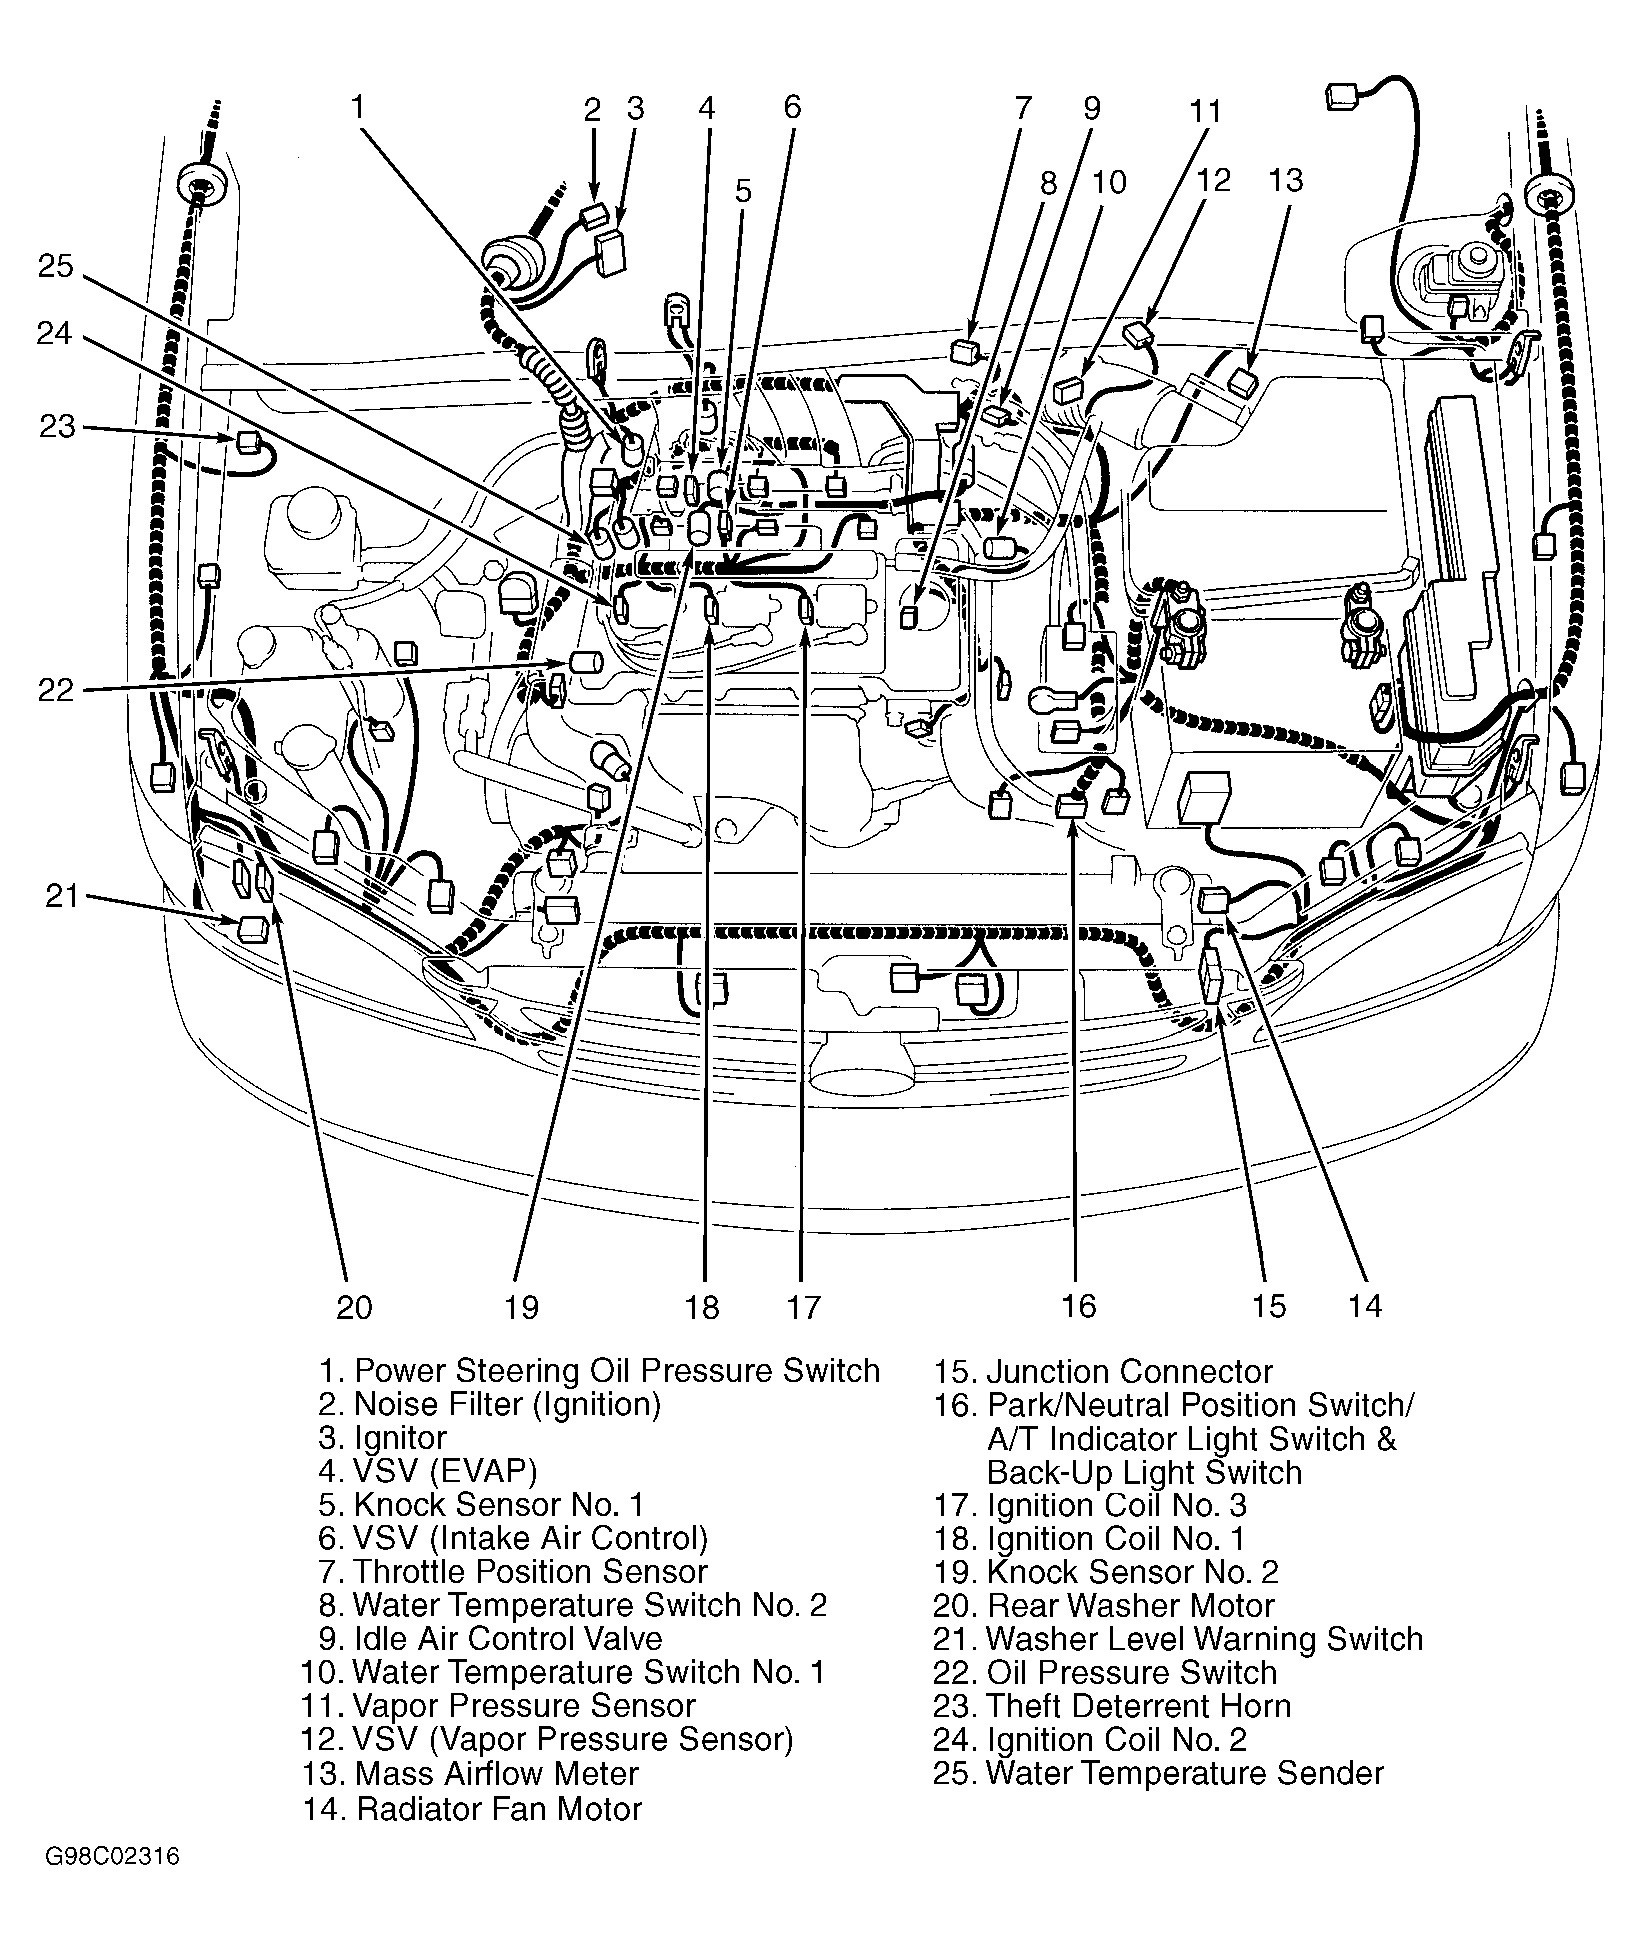 1998 toyota Corolla Engine Diagram 1997 toyota Corolla Engine Diagram Wiring Diagram Paper Of 1998 toyota Corolla Engine Diagram